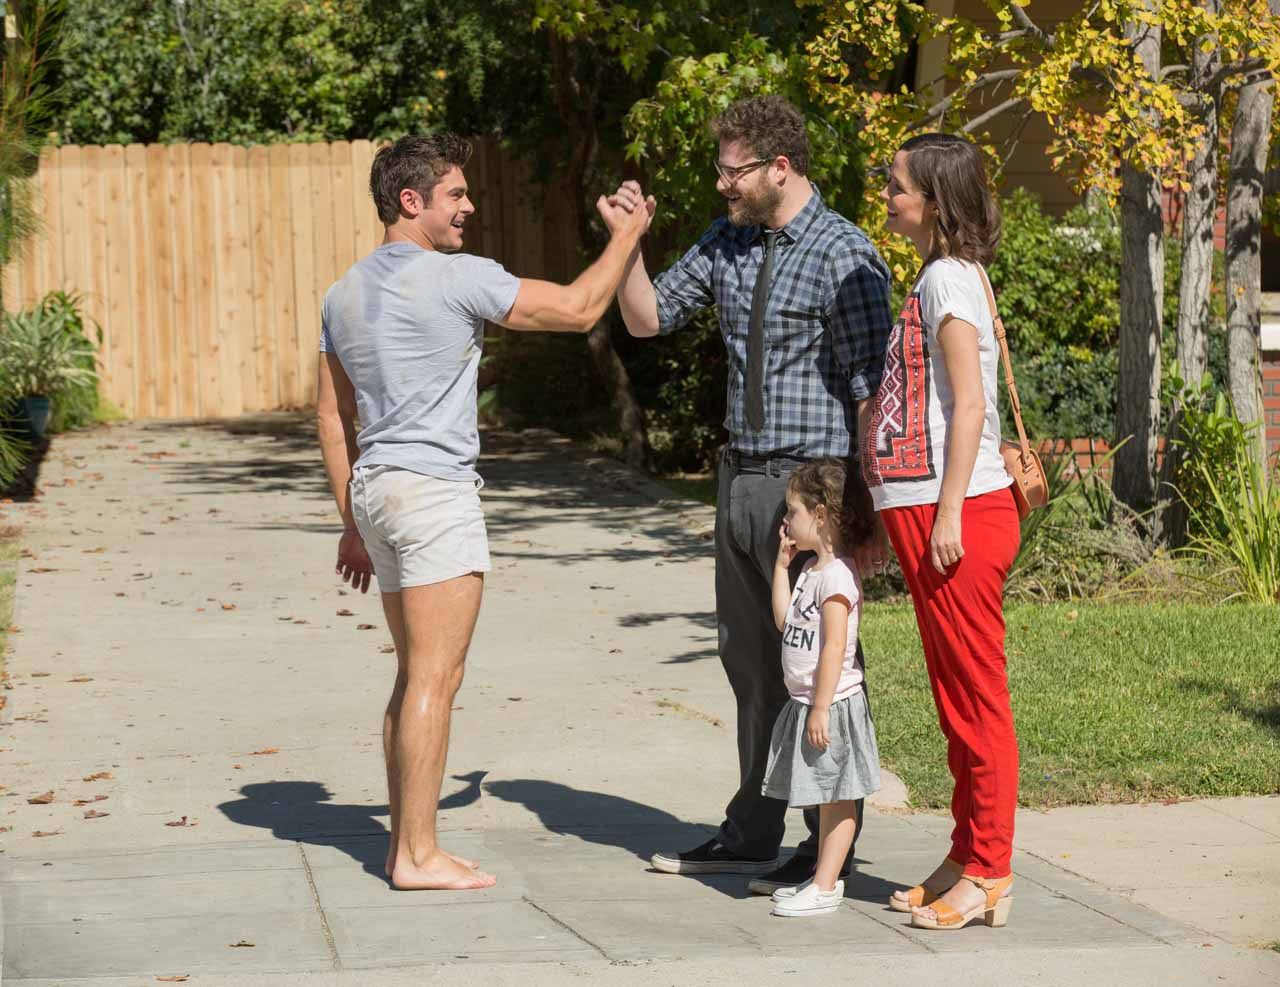 neighbors Parents need to know that neighbors is a raunchy, hard-r comedy about a hard-partying college fraternity that moves in next door to a married couple with a baby starring seth rogen, zac efron, rose byrne, and dave franco, the comedy is overwhelmingly about sex, drugs, and pranks that aren't appropriate for most teens.